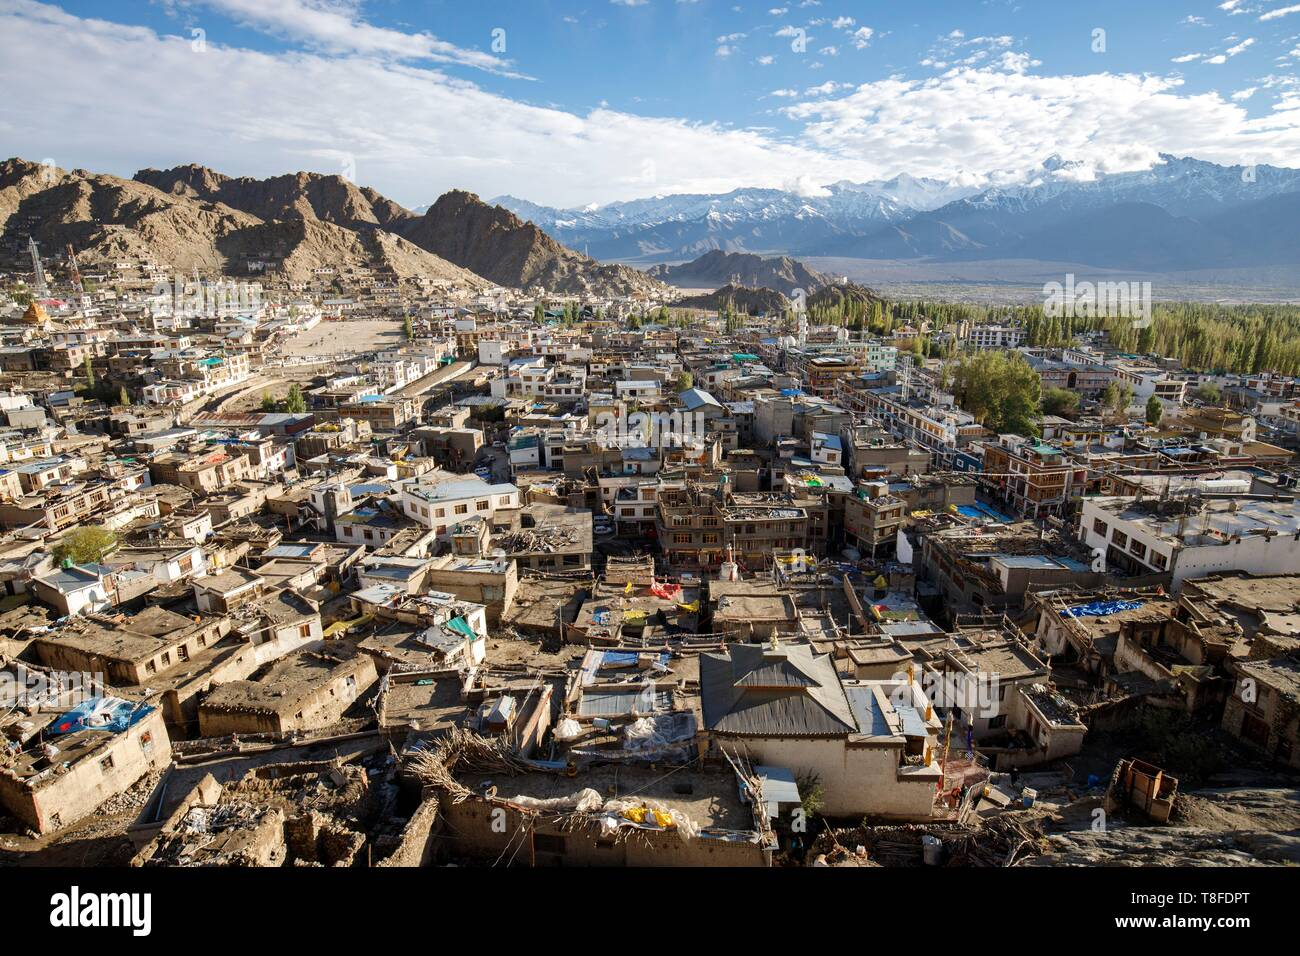 India, State of Jammu and Kashmir, Himalaya, Ladakh, Indus Valley, Leh (3500 m), general view of the old city from the Palais Royal - Stock Image